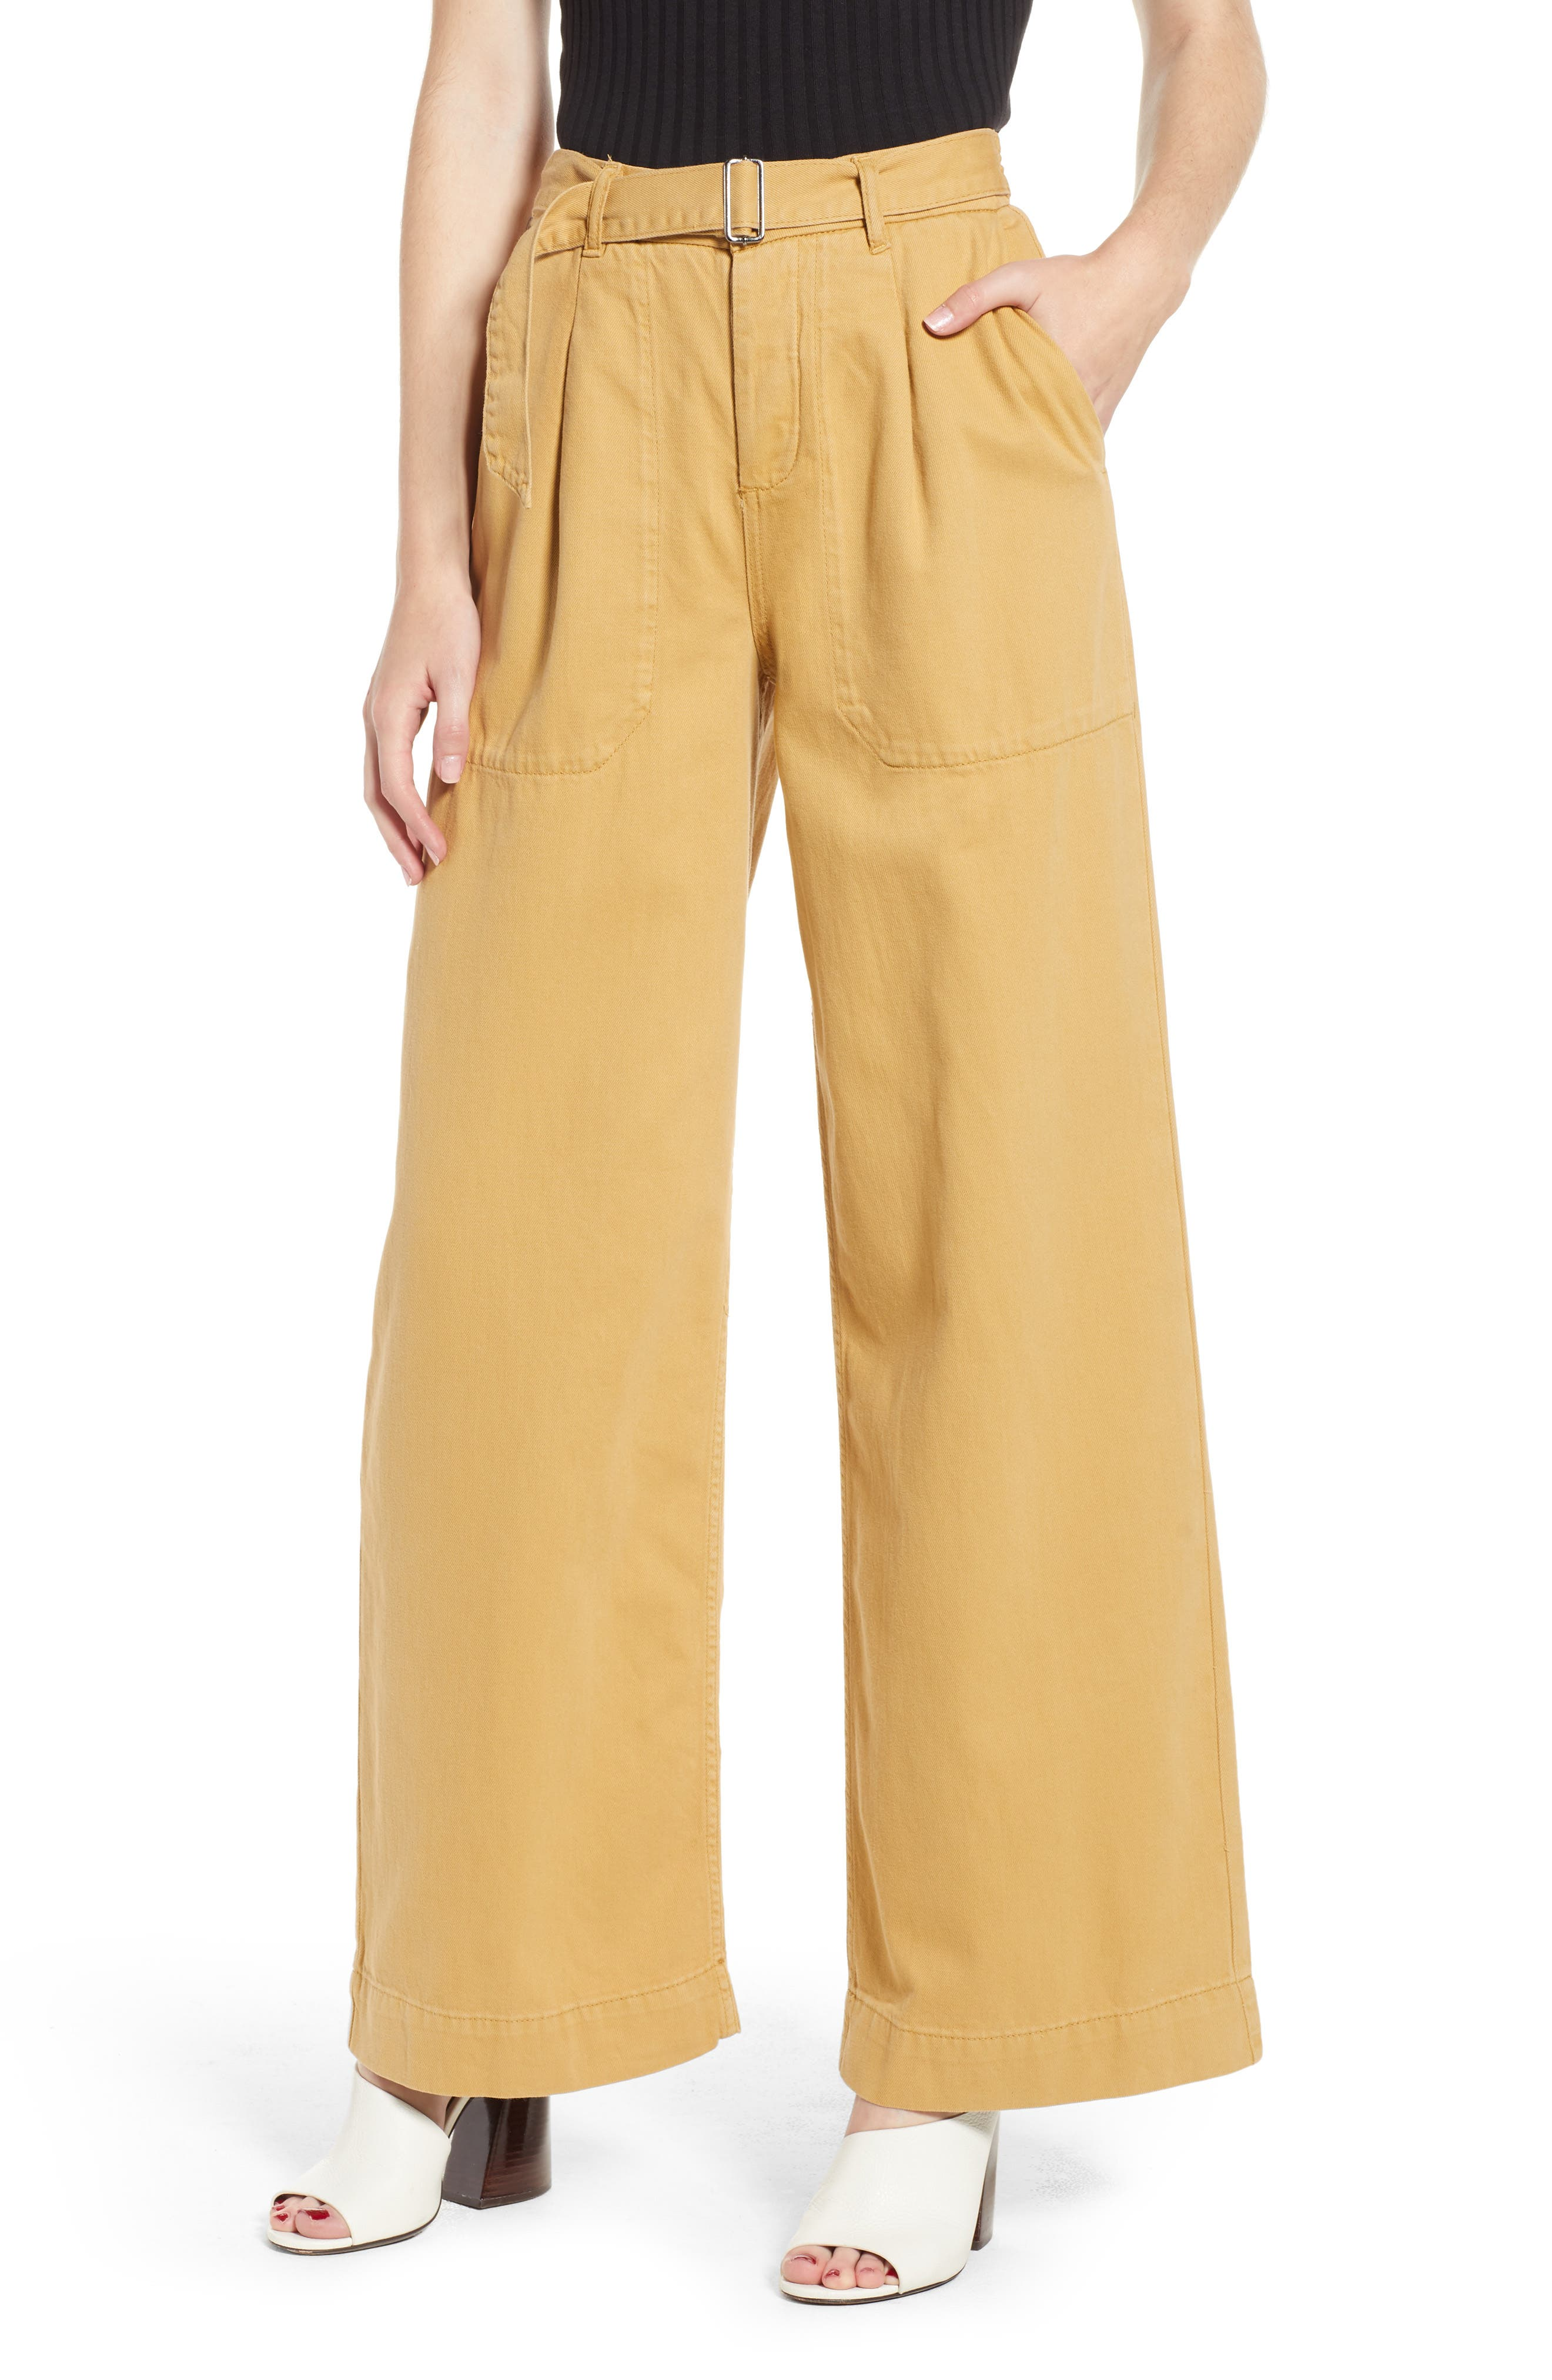 Wonder Wide Chino Trousers,                             Main thumbnail 1, color,                             250